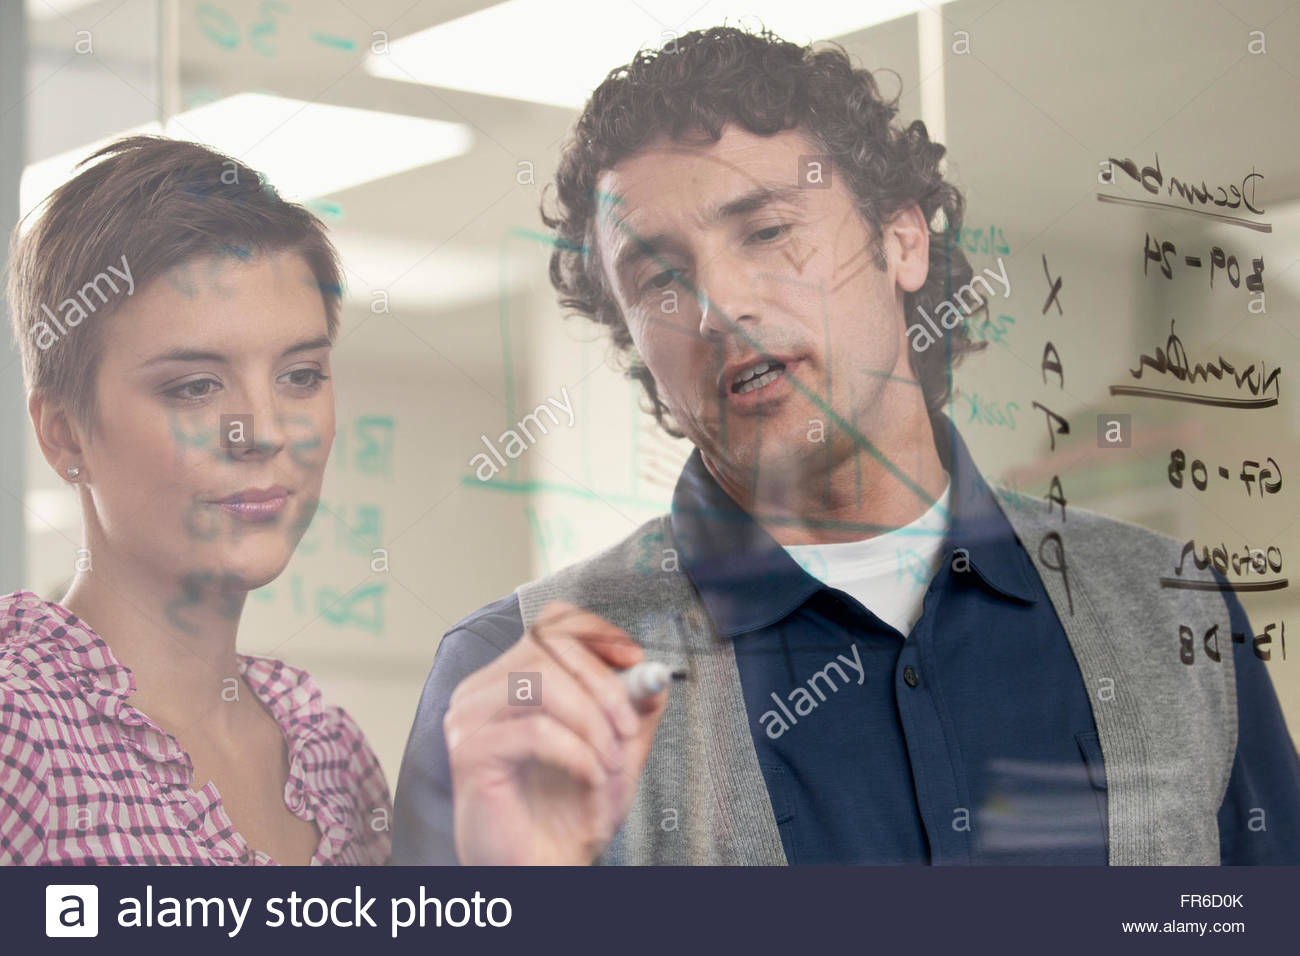 reviewing data on glass wall - Stock Image